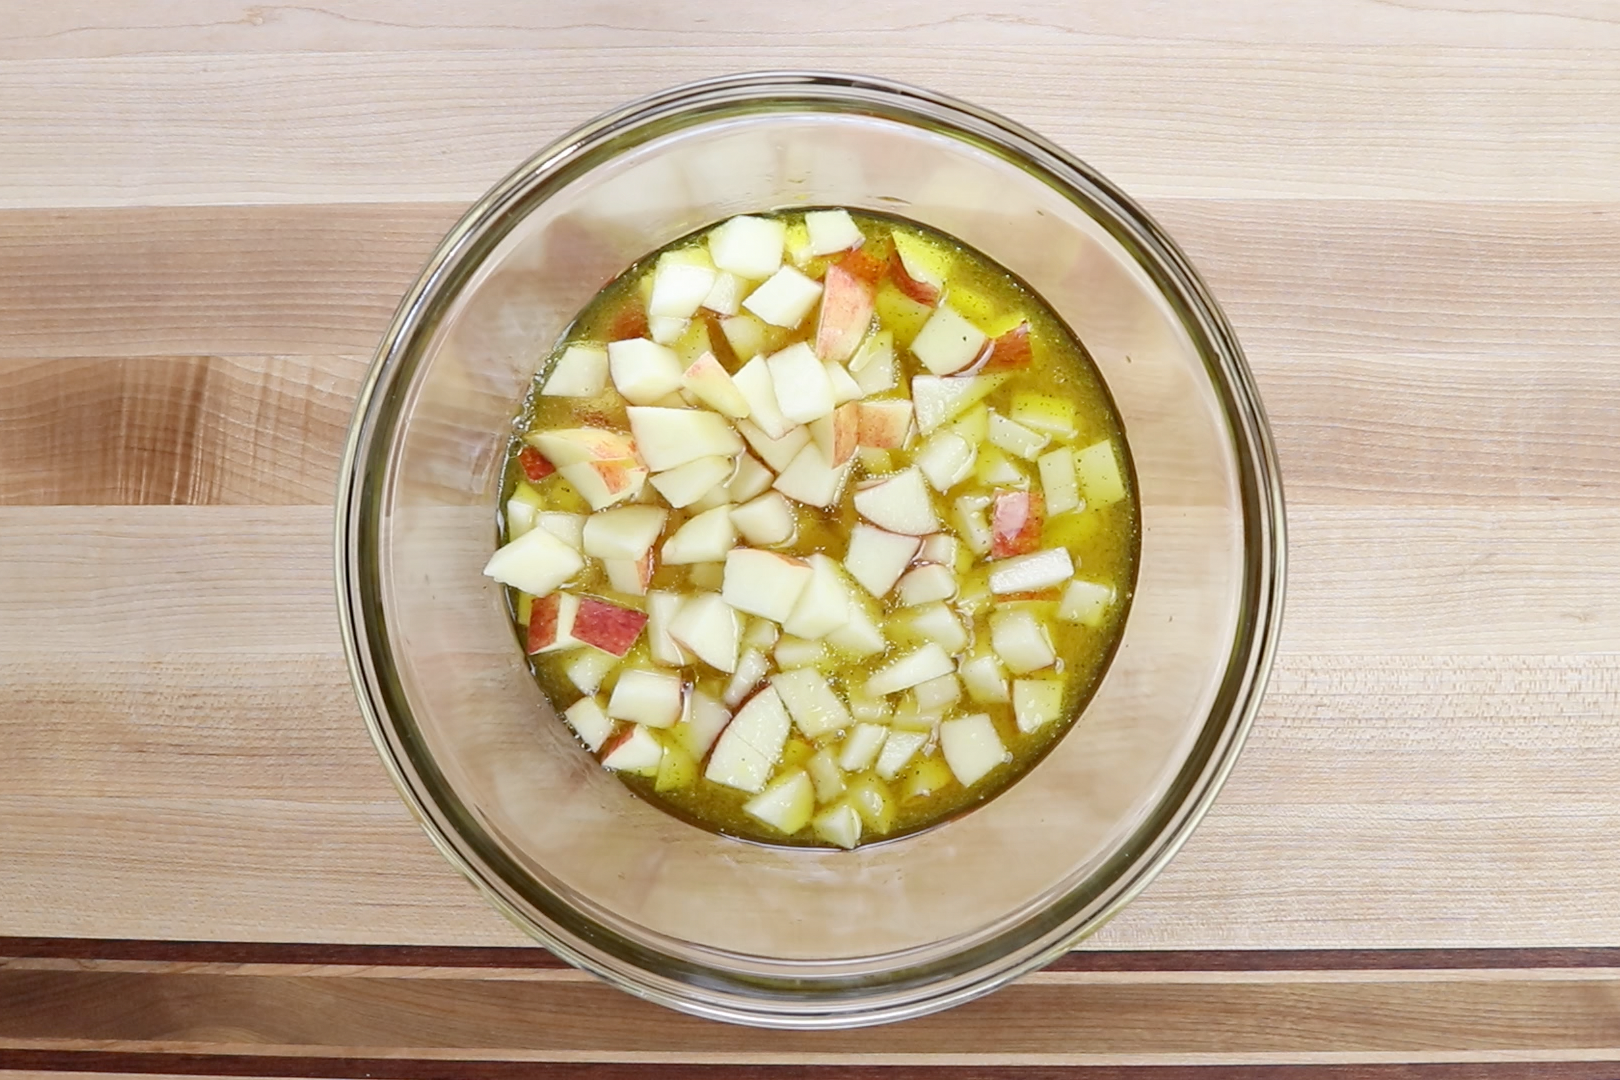 3. Add apples. Stir and set aside letting dressing soak into apples. -